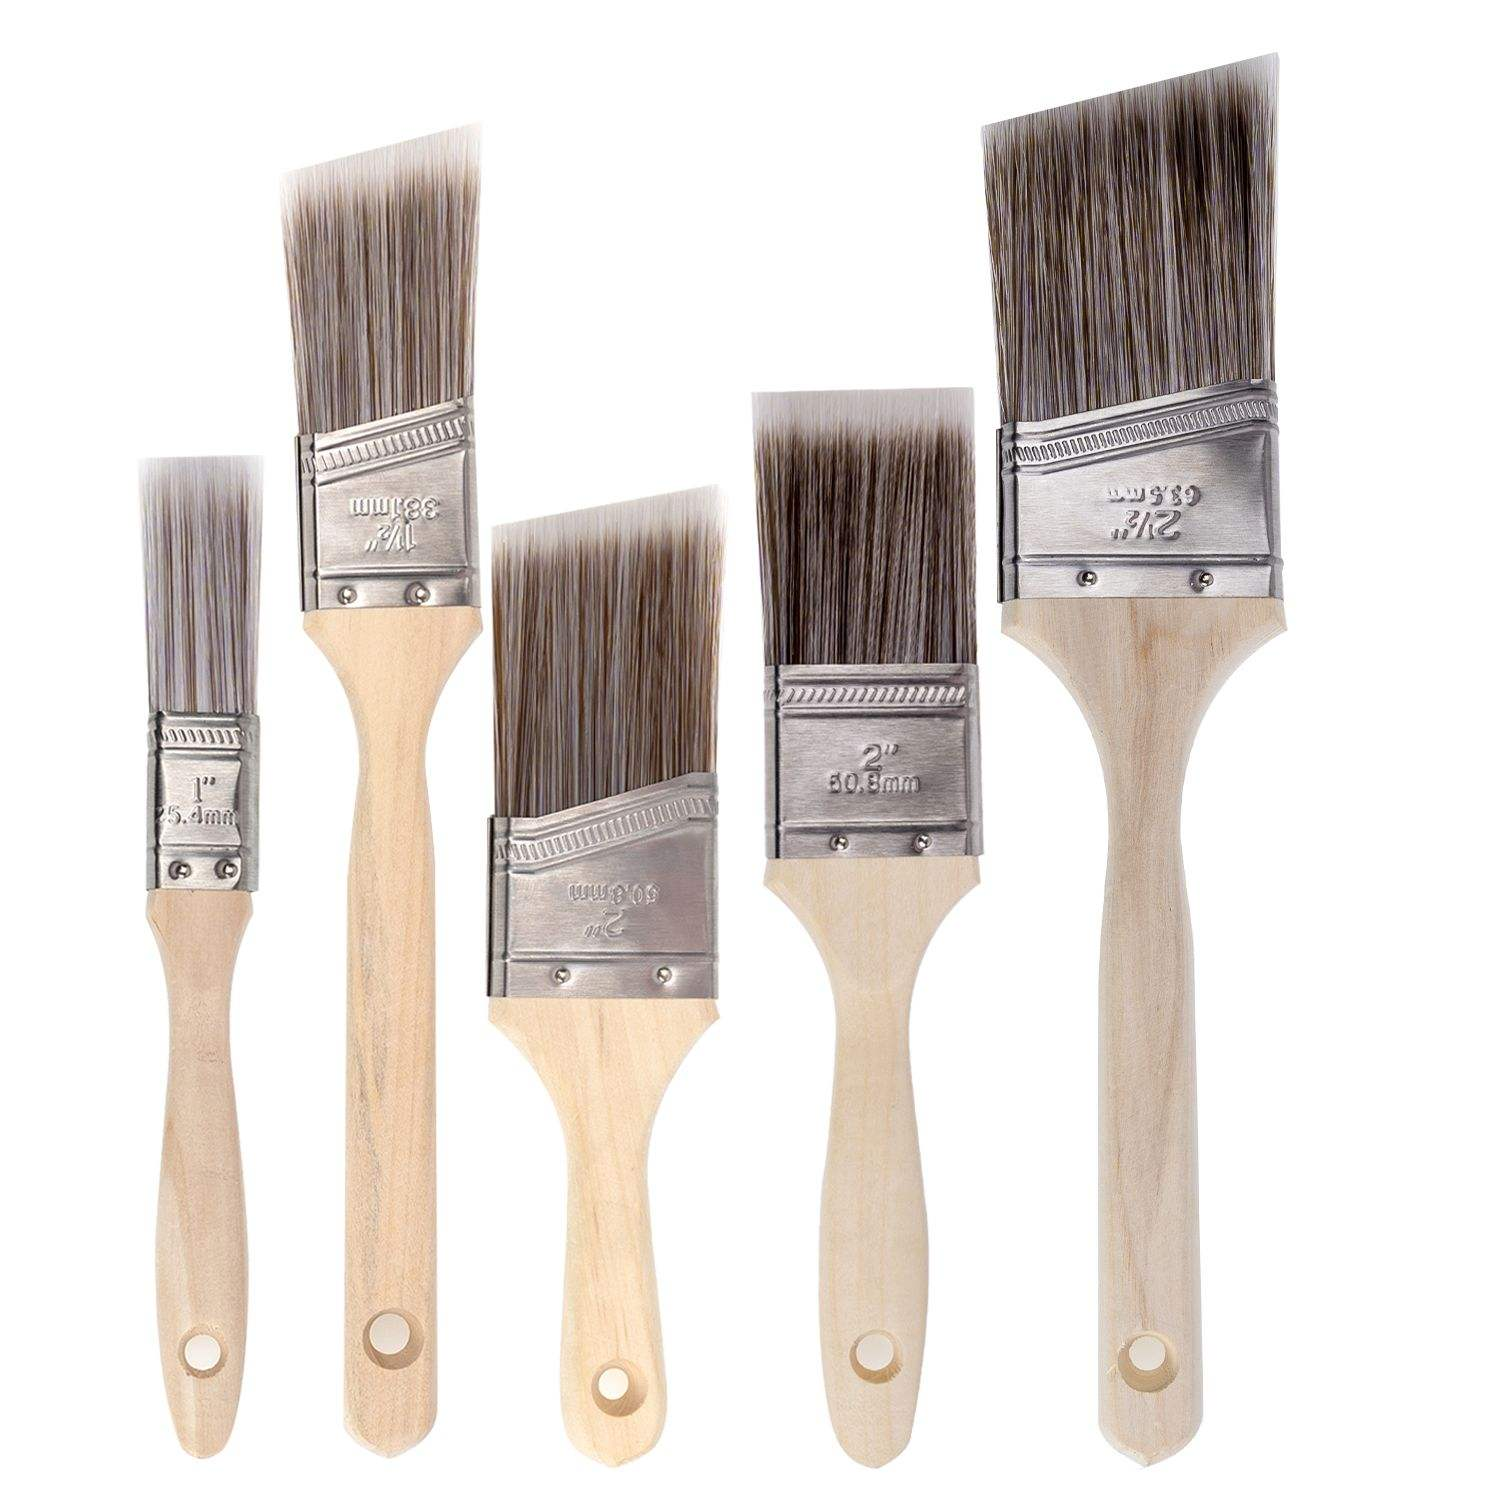 Paint Brushes - 5 Ea - Paint Brush Set